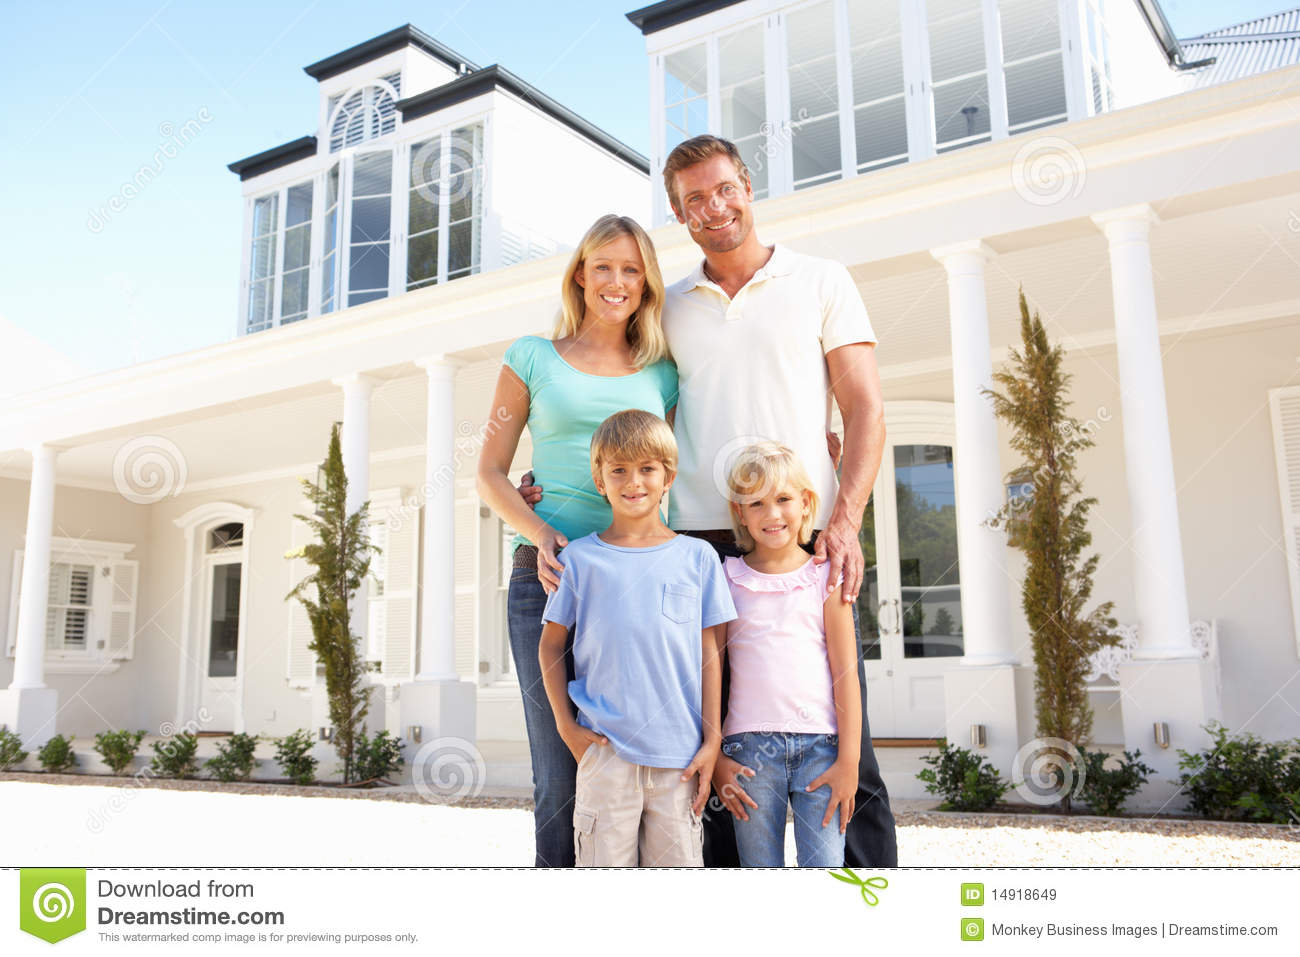 This Is Me Missing You besides 8 Ways To Get Cooking With Your Kids further 5 Things To Consider Before Living Together also Royalty Free Stock Images Young Family Standing Outside Dream Home Image14918649 in addition 6792901. on 104600